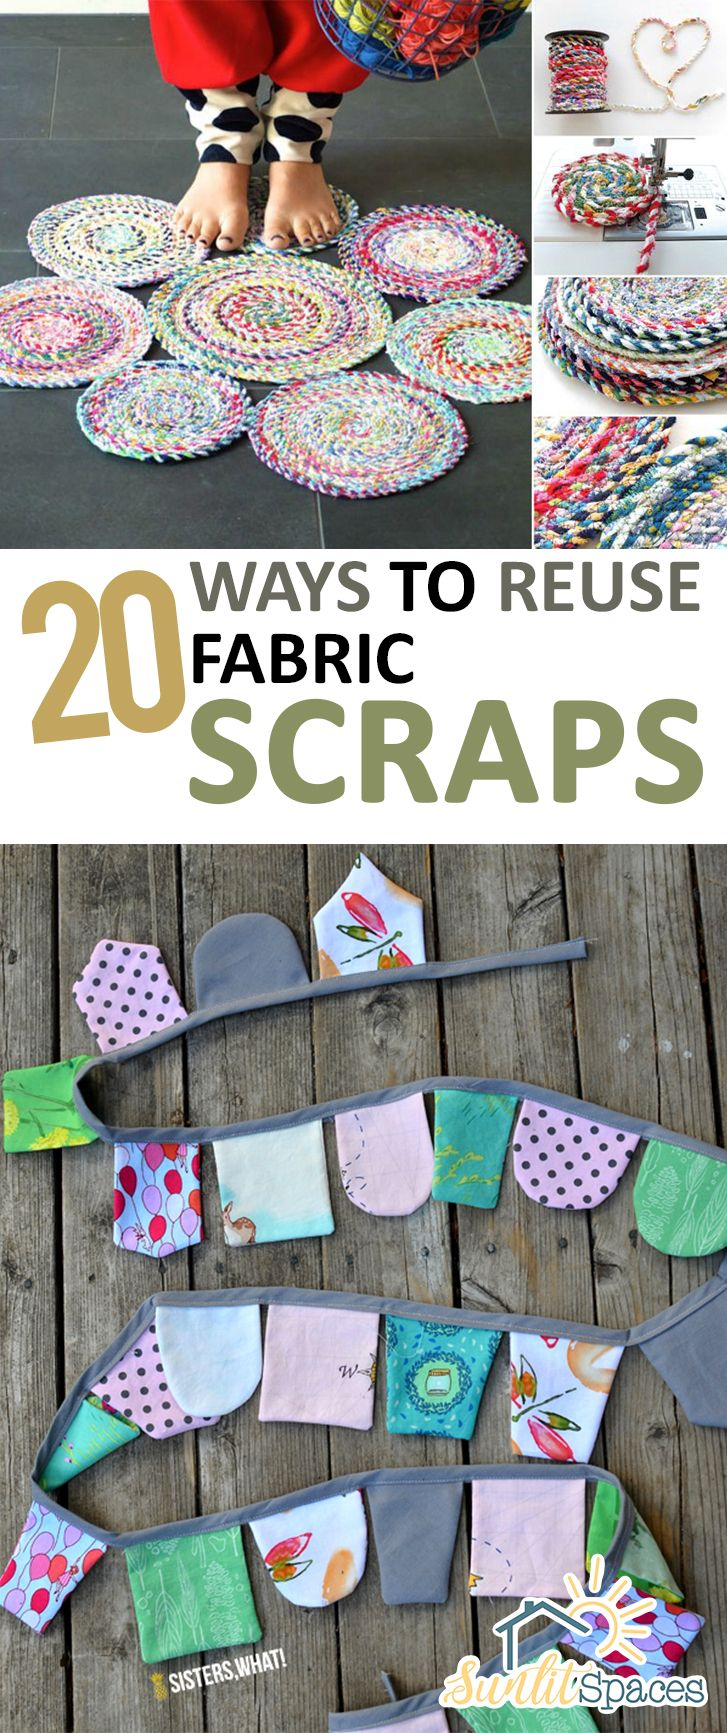 How to Reuse Fabric Scraps, Things to Do With Fabric Scraps, Fabric Scrap Crafts, Easy Sewing Projects, Simple Sewing Projects,